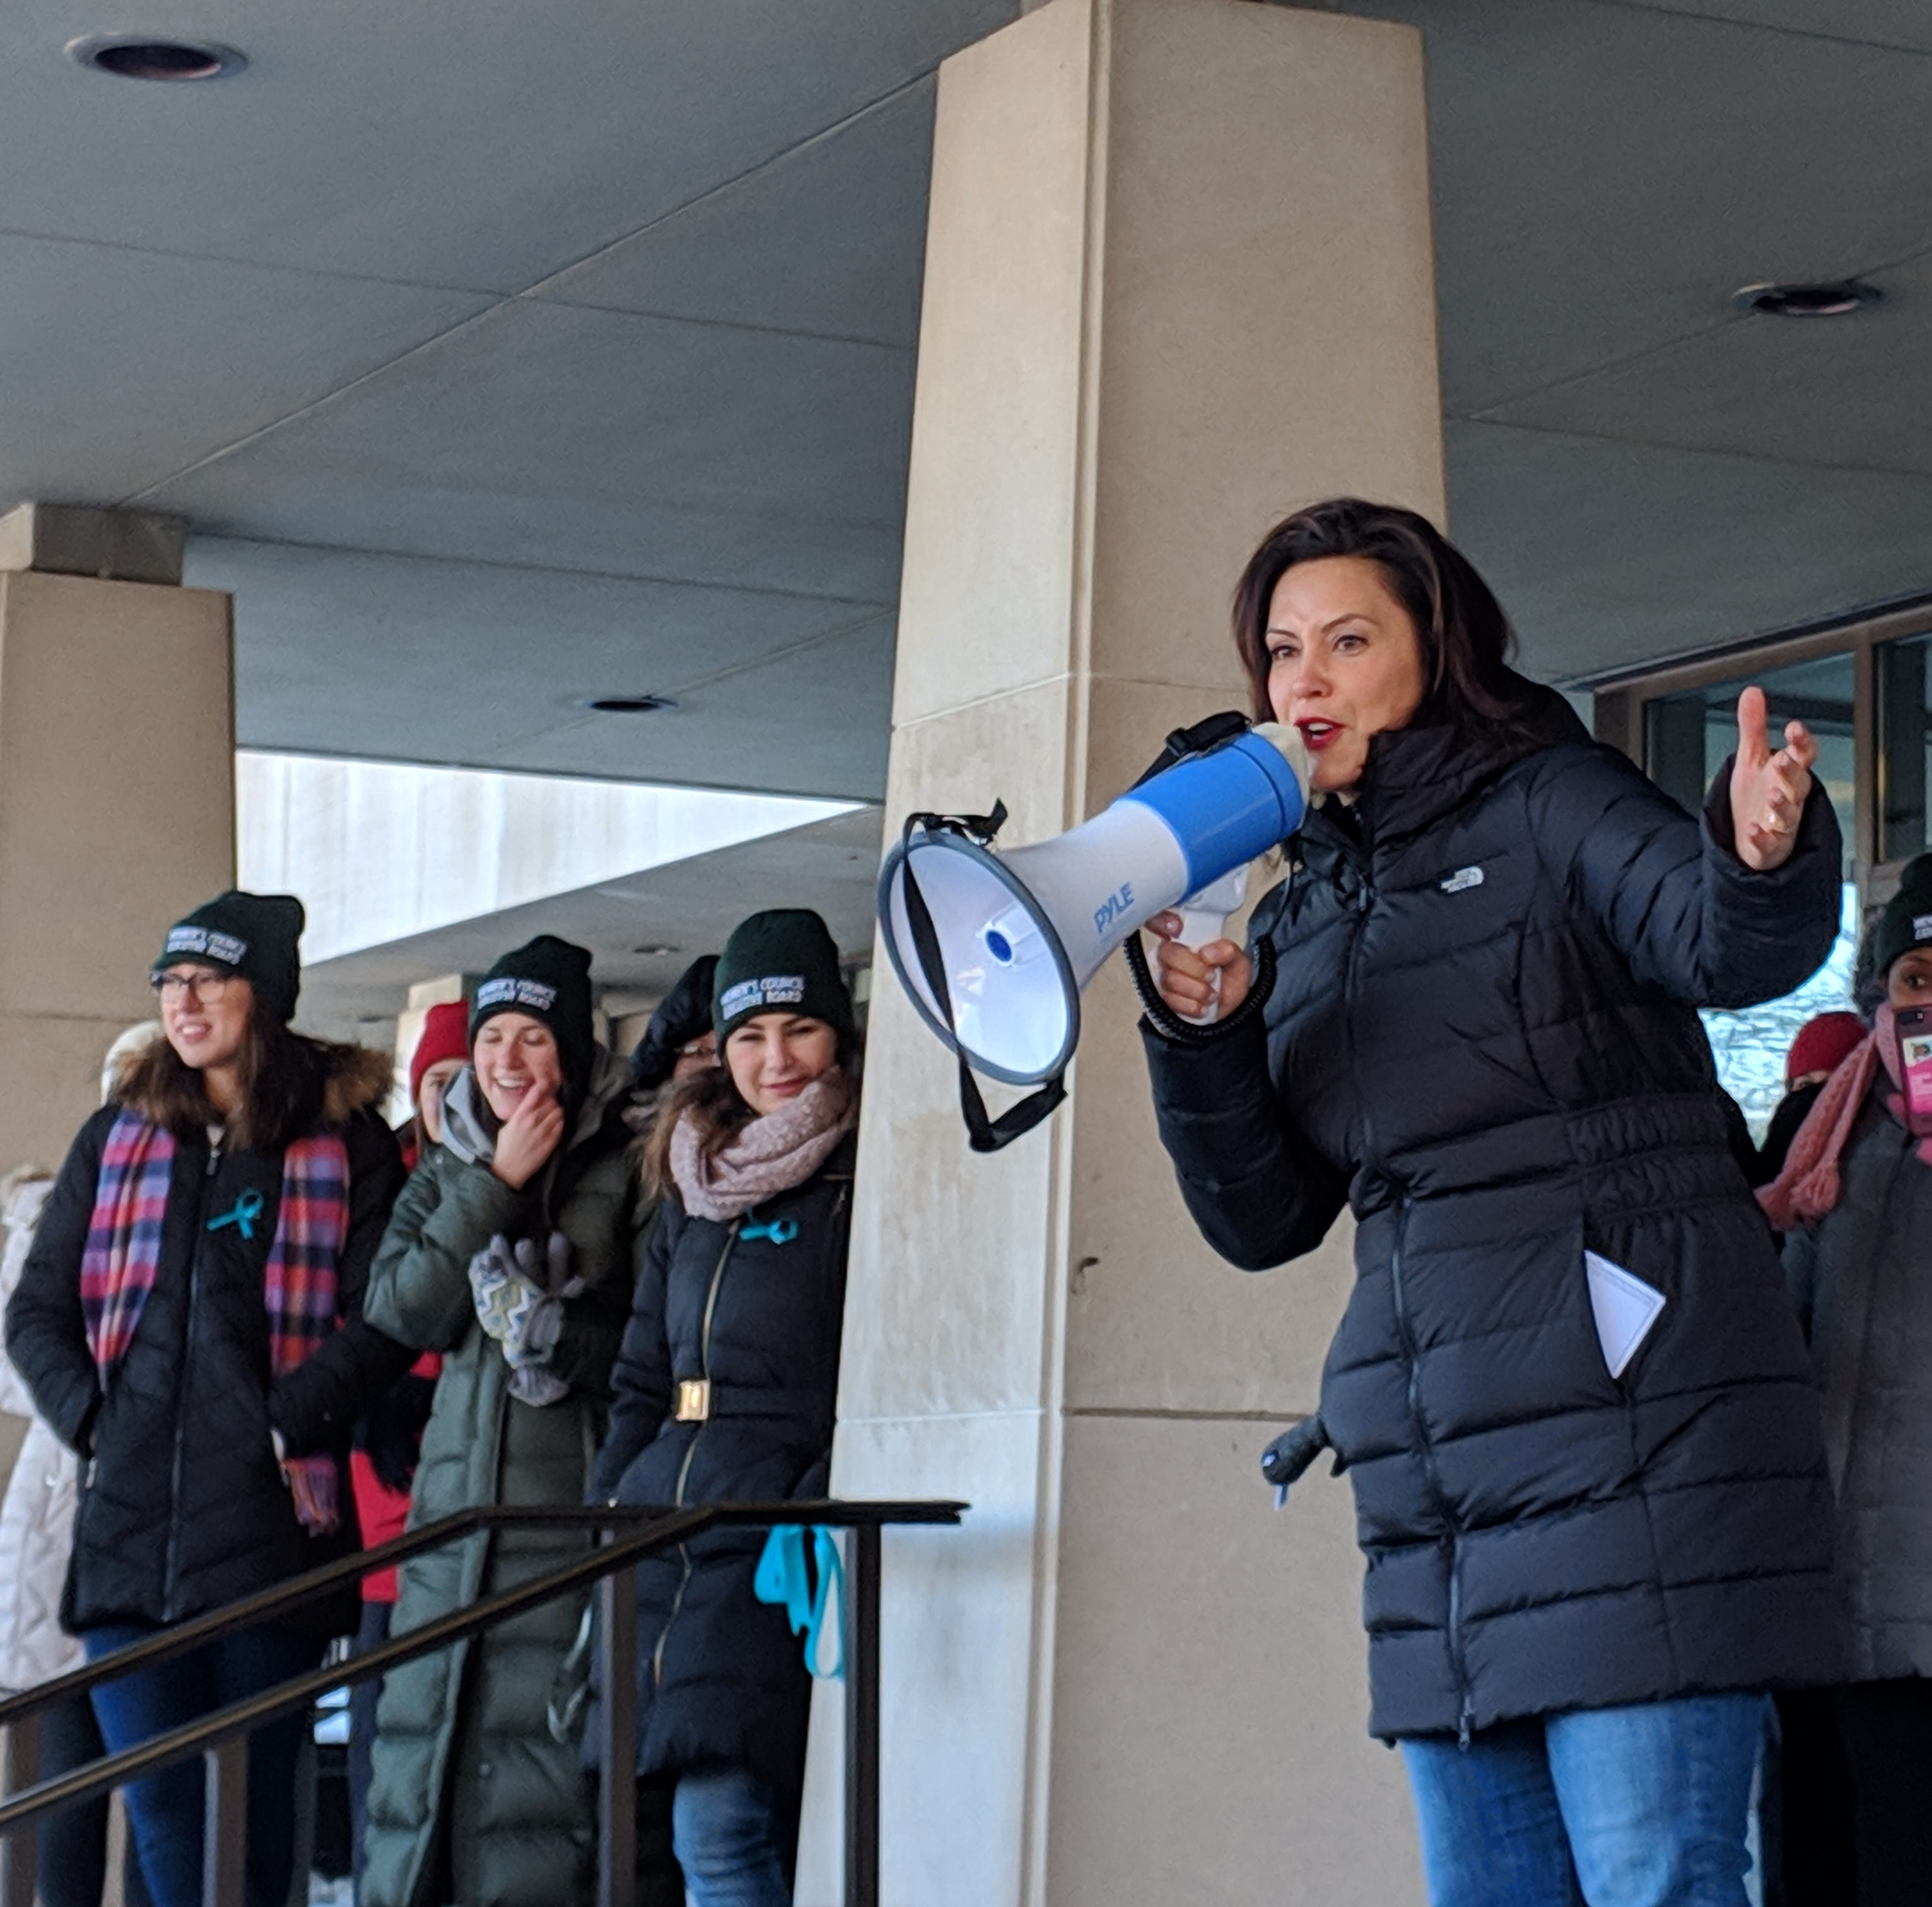 Whitmer rallies women at MSU: We won in 2018 and 'will not stop'